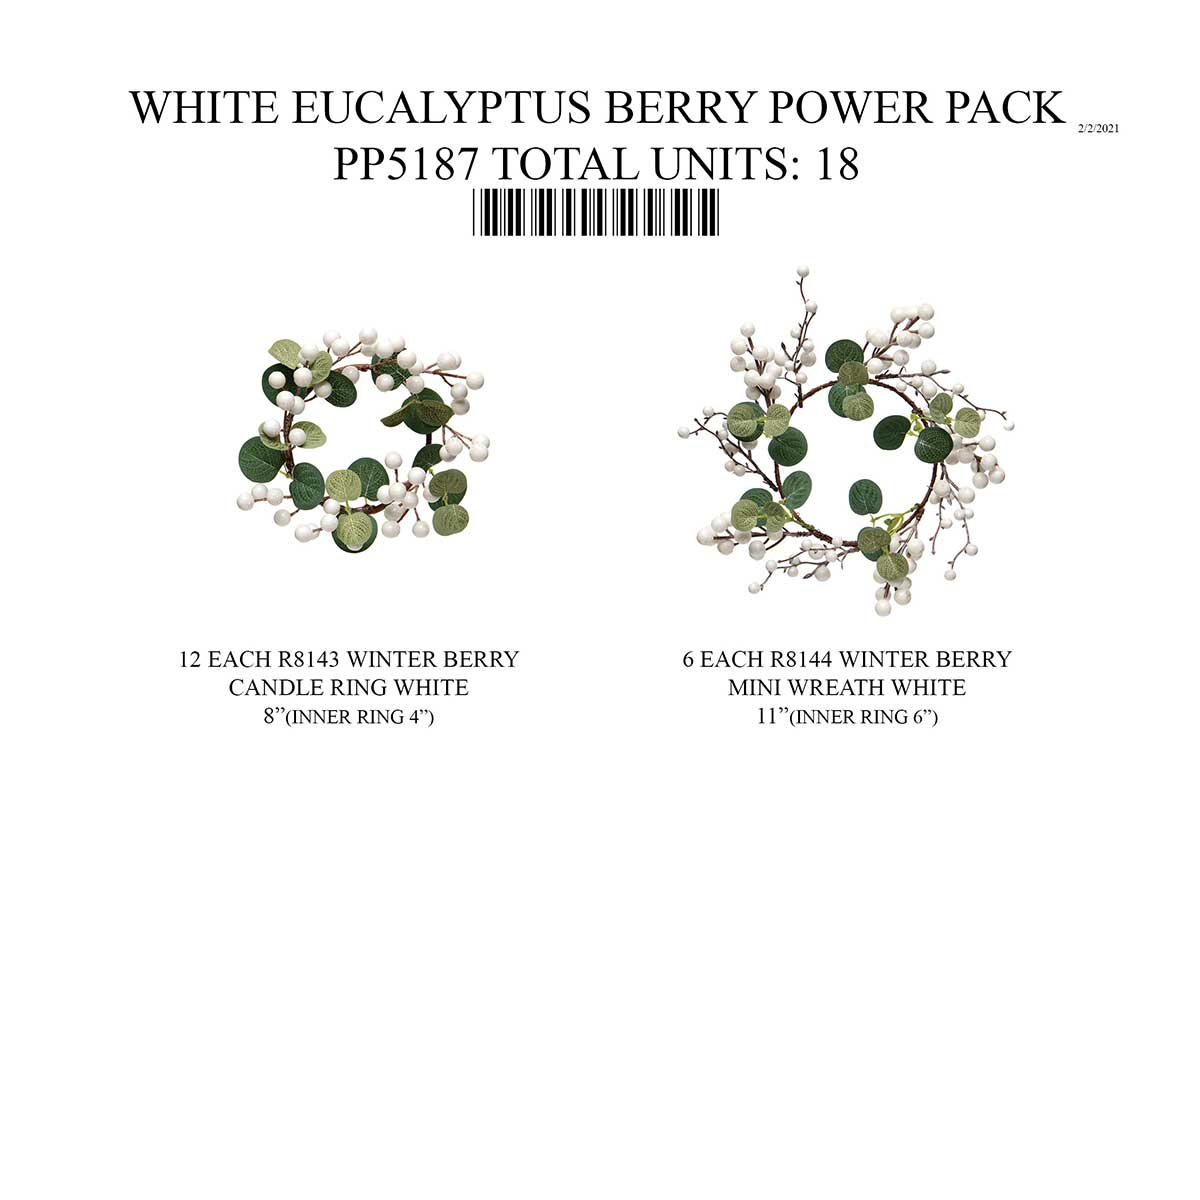 EUCALYPTUS WHITE BERRY MINI WREATH/CANDLE RING 18 UNITS PP5187